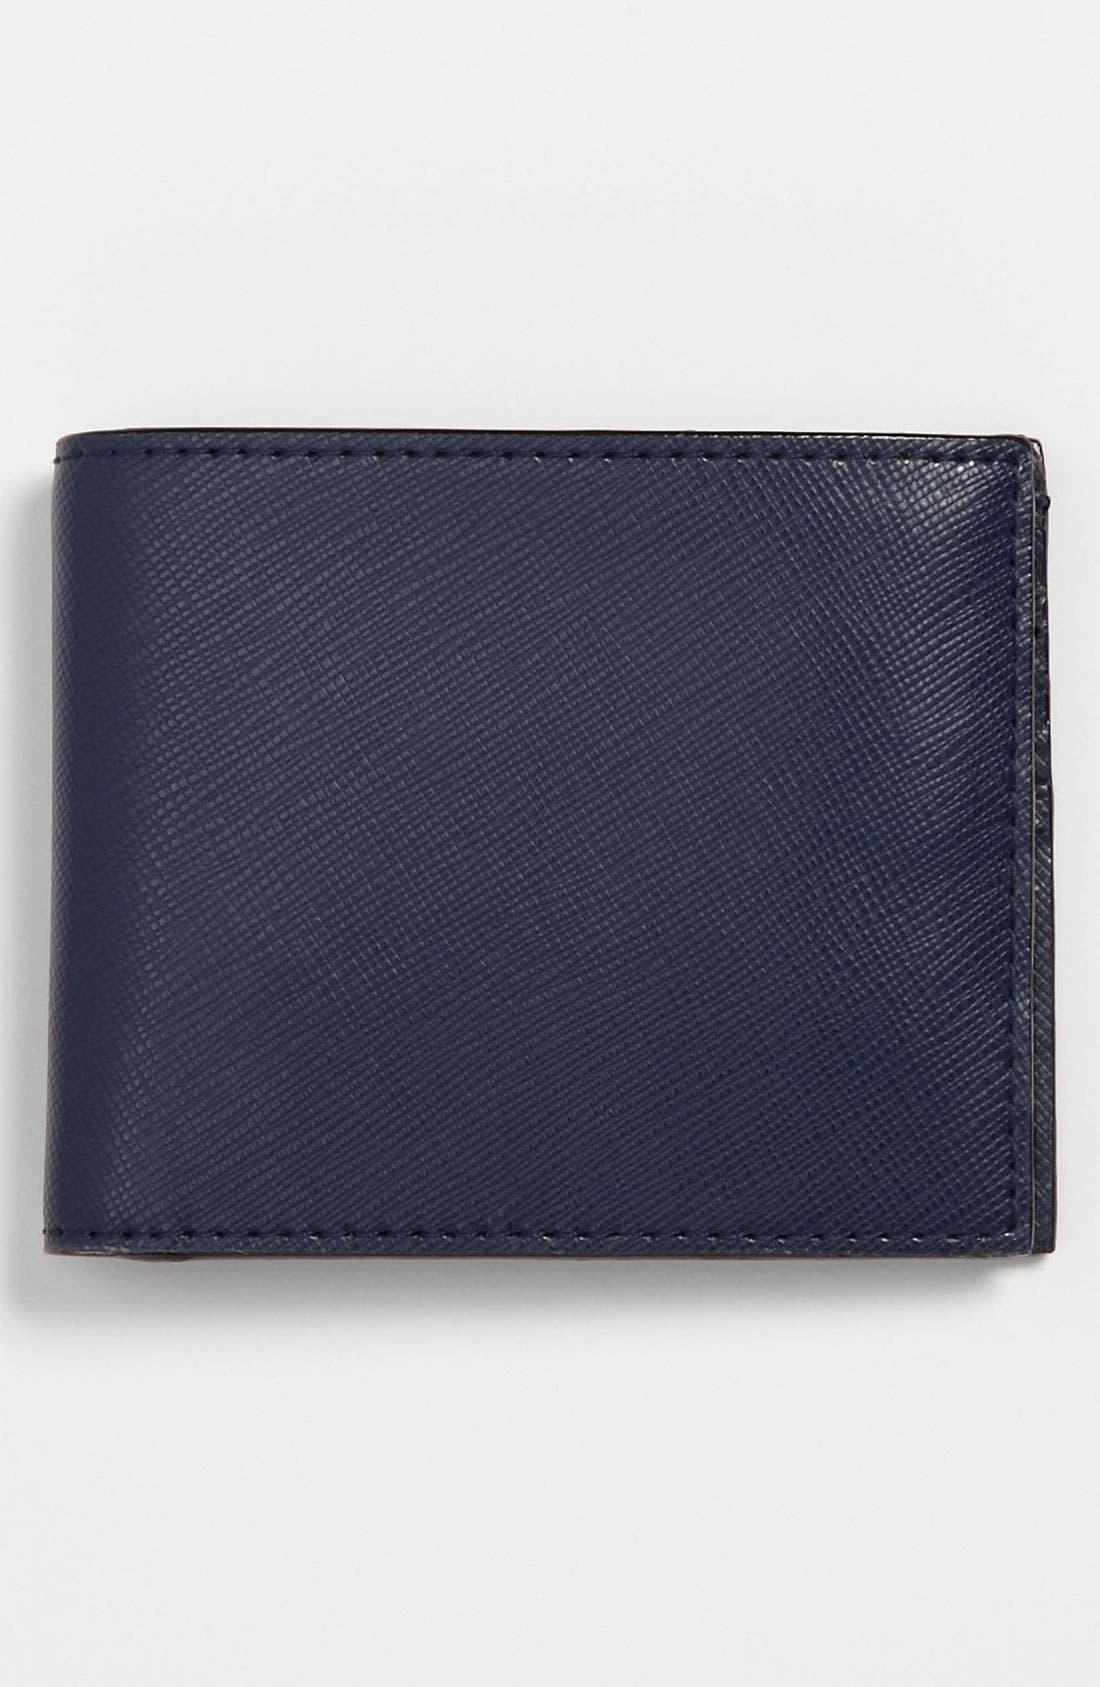 Alternate Image 1 Selected - Jack Spade Crosshatched Leather Billfold Wallet